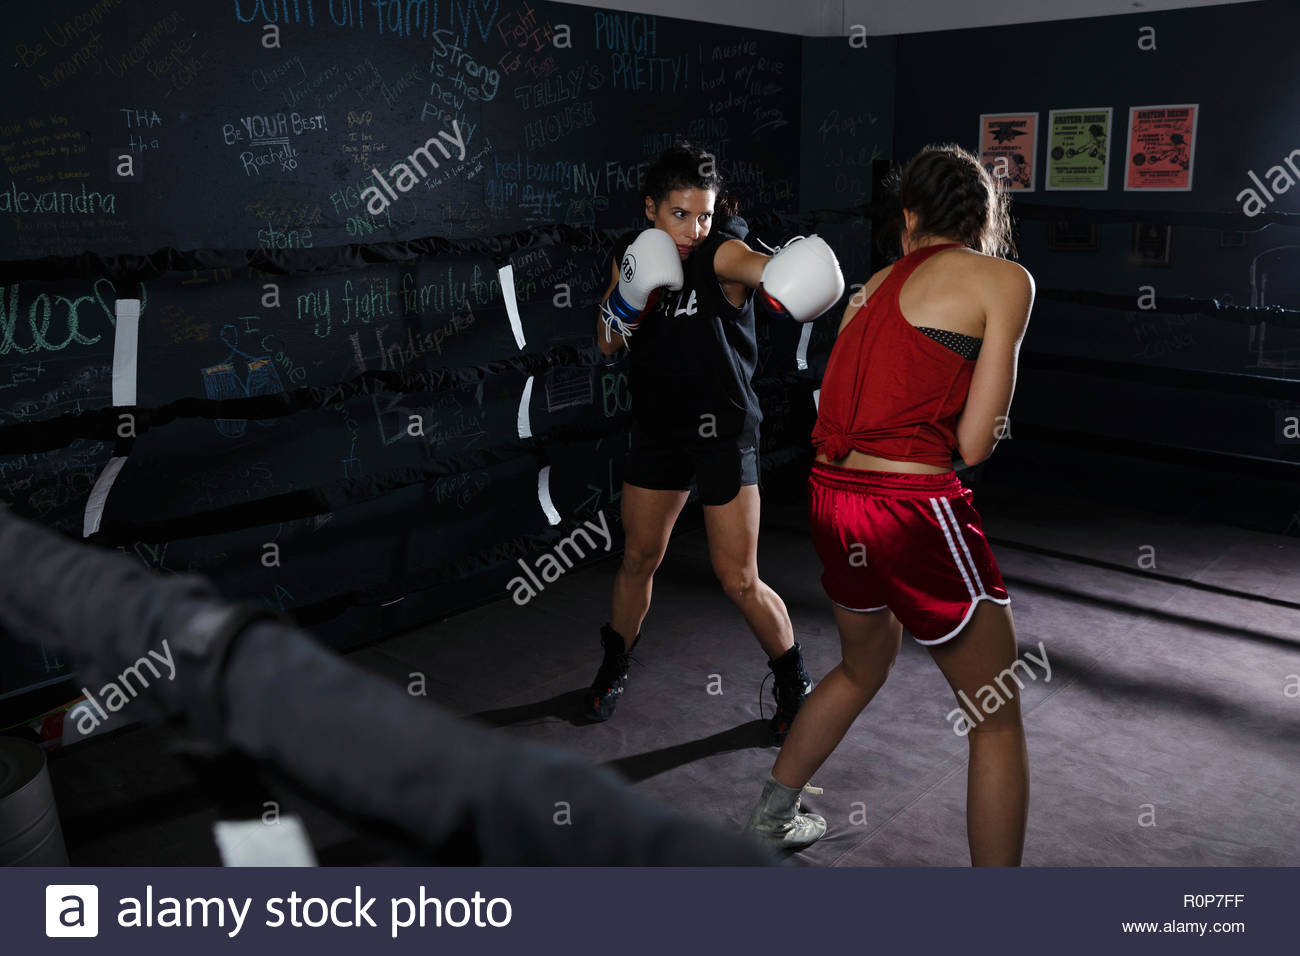 Tough female boxers training in boxing ring - Stock Image